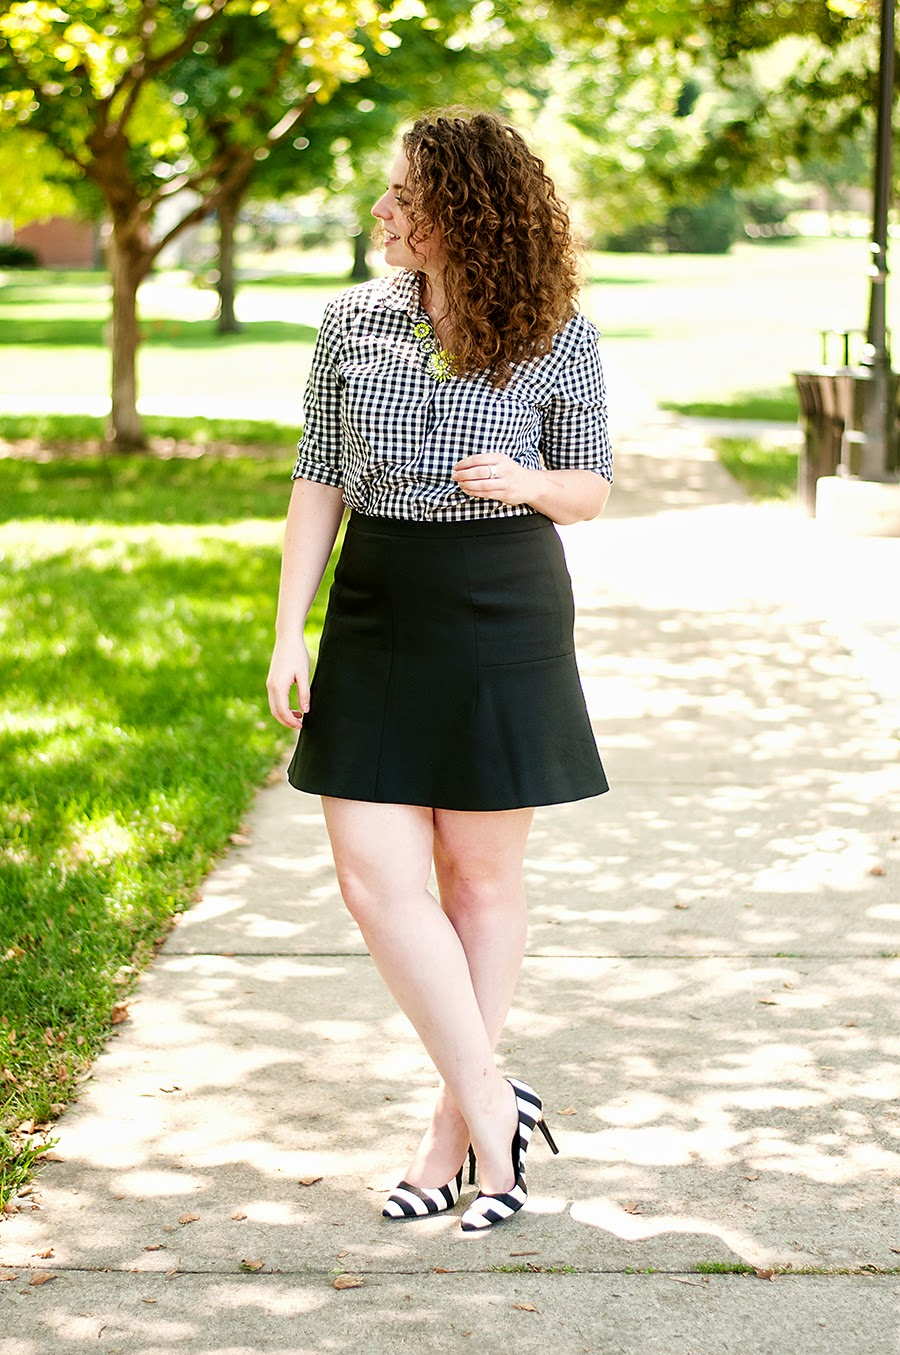 Gingham + stripes + flared skirt outfit